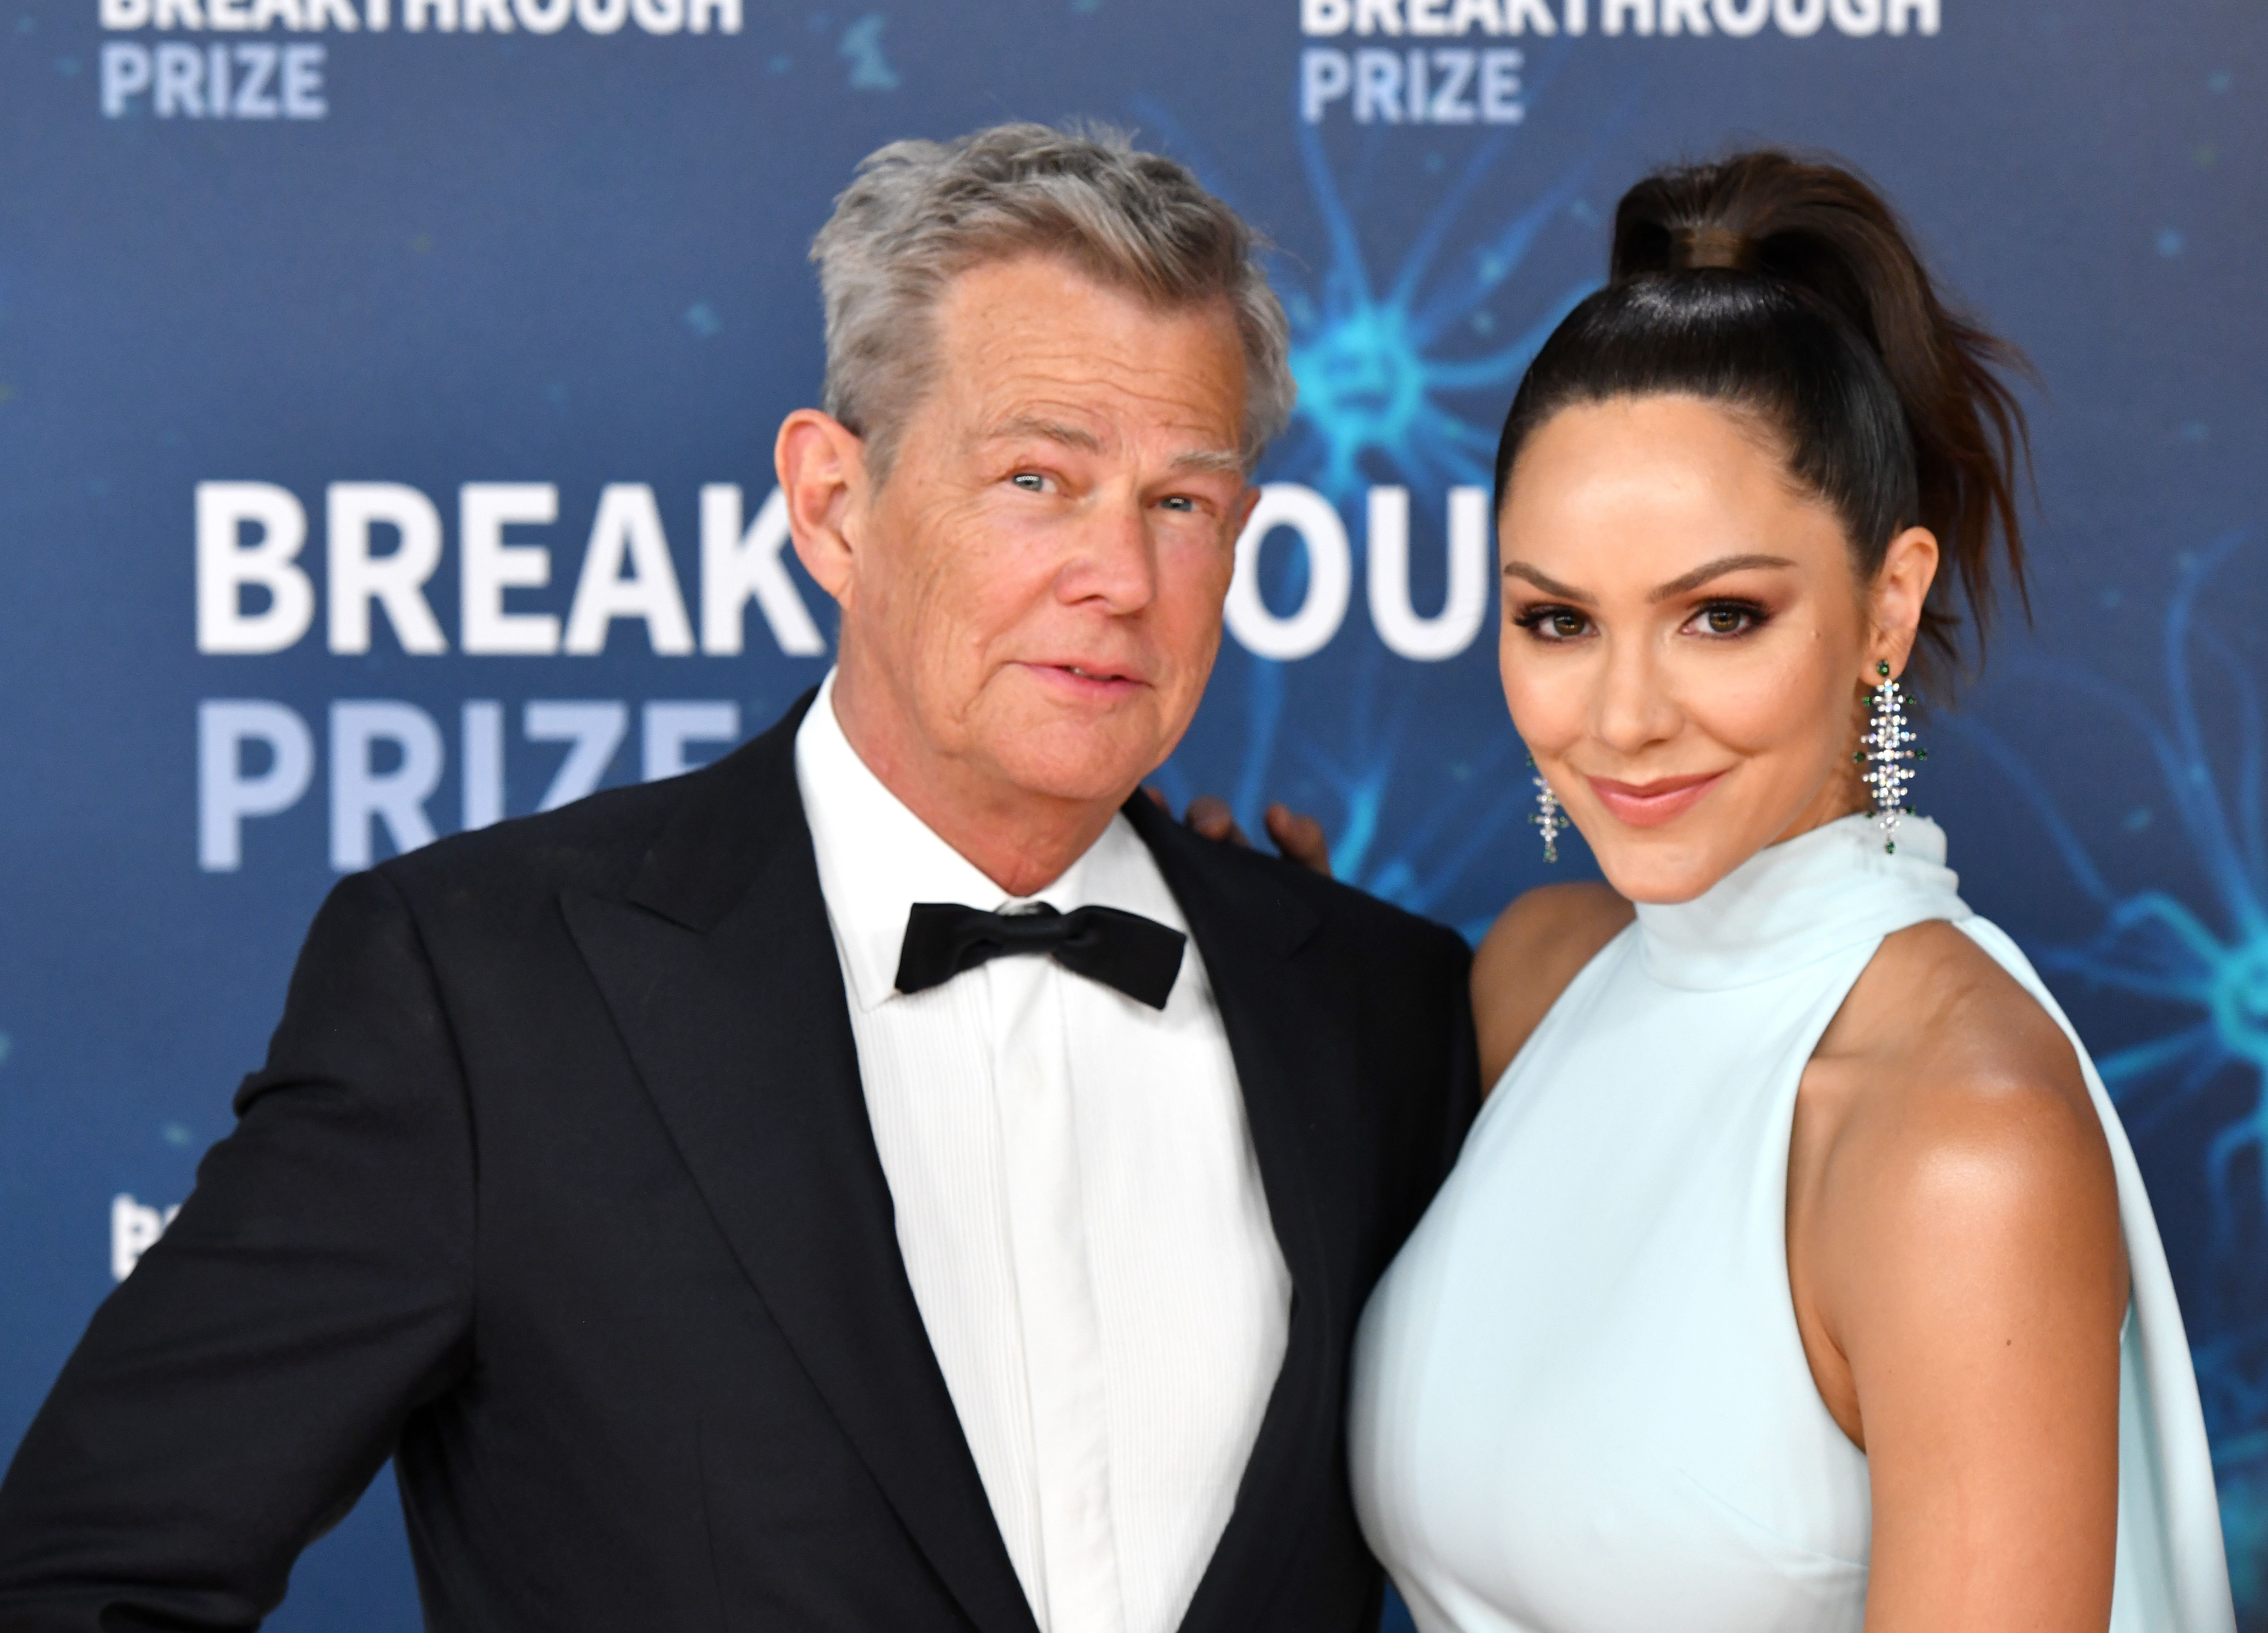 David Foster and Katharine McPhee at the 2020 Breakthrough Prize Red Carpet at NASA Ames Research Center on November 03, 2019 | Photo: Getty Images